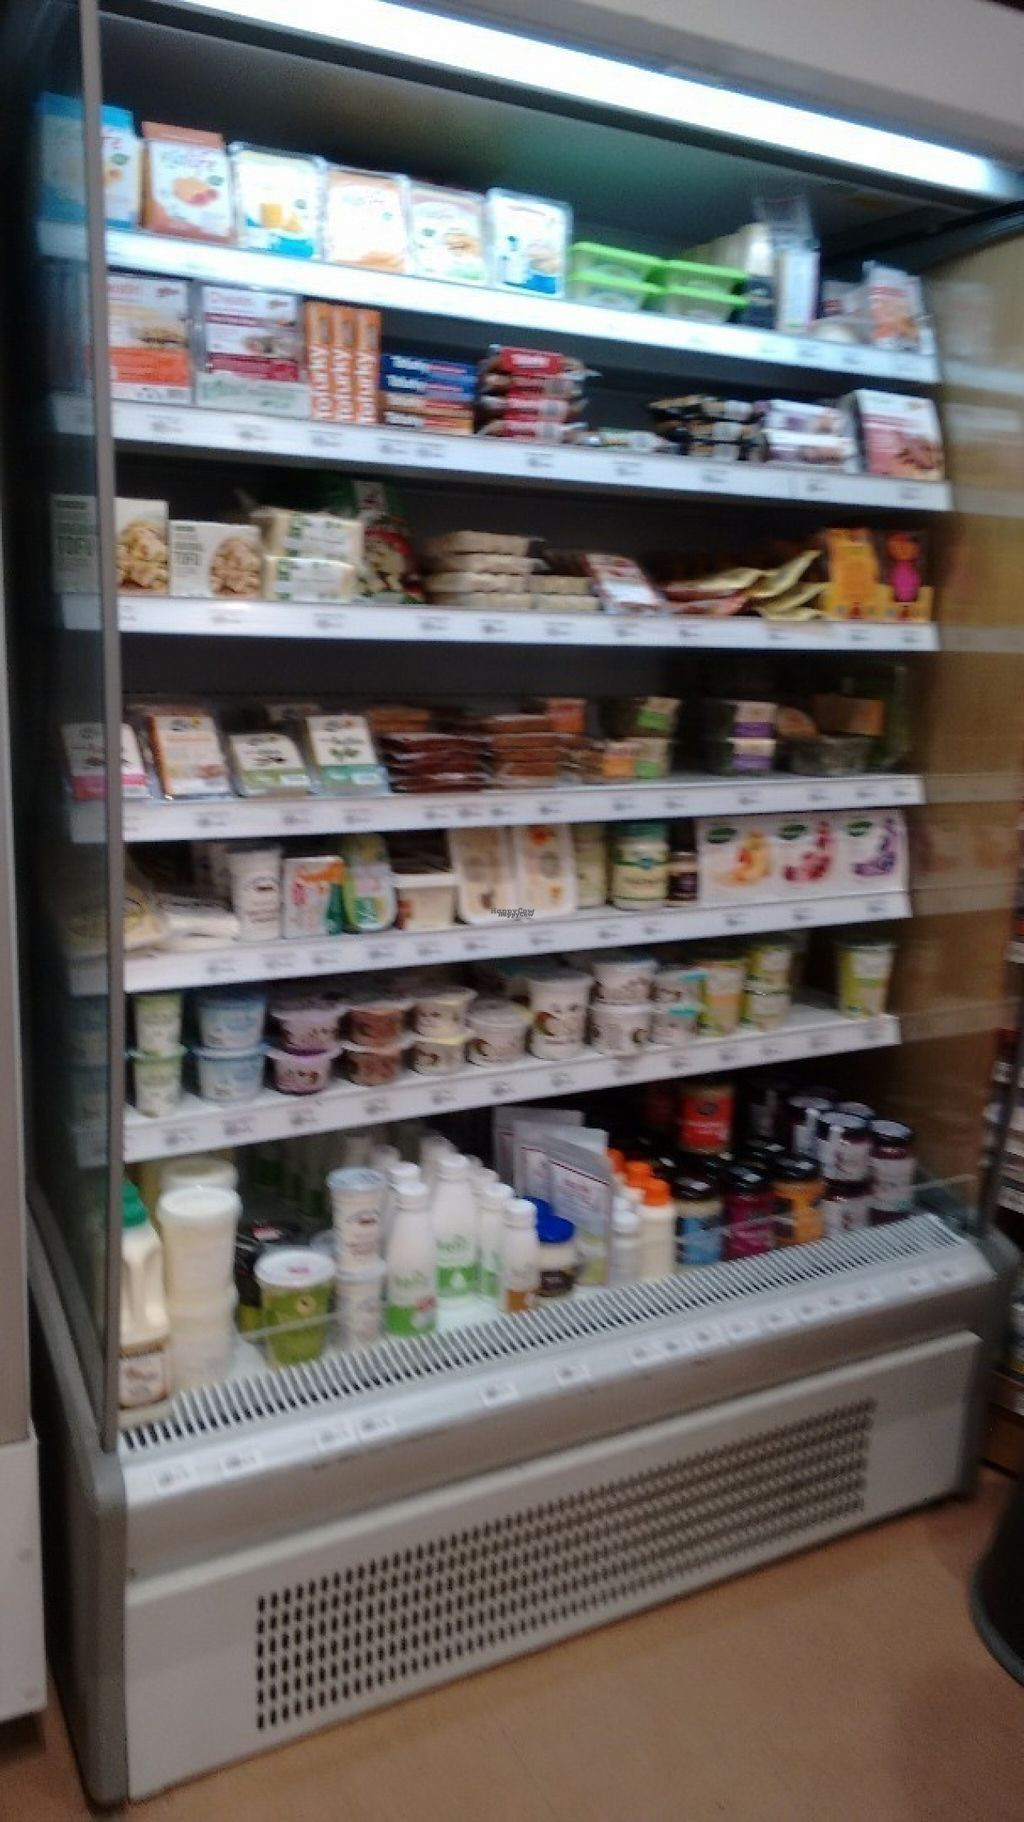 """Photo of Nourish - Wicklow Street  by <a href=""""/members/profile/craigmc"""">craigmc</a> <br/>Fridge <br/> August 19, 2016  - <a href='/contact/abuse/image/12471/170036'>Report</a>"""